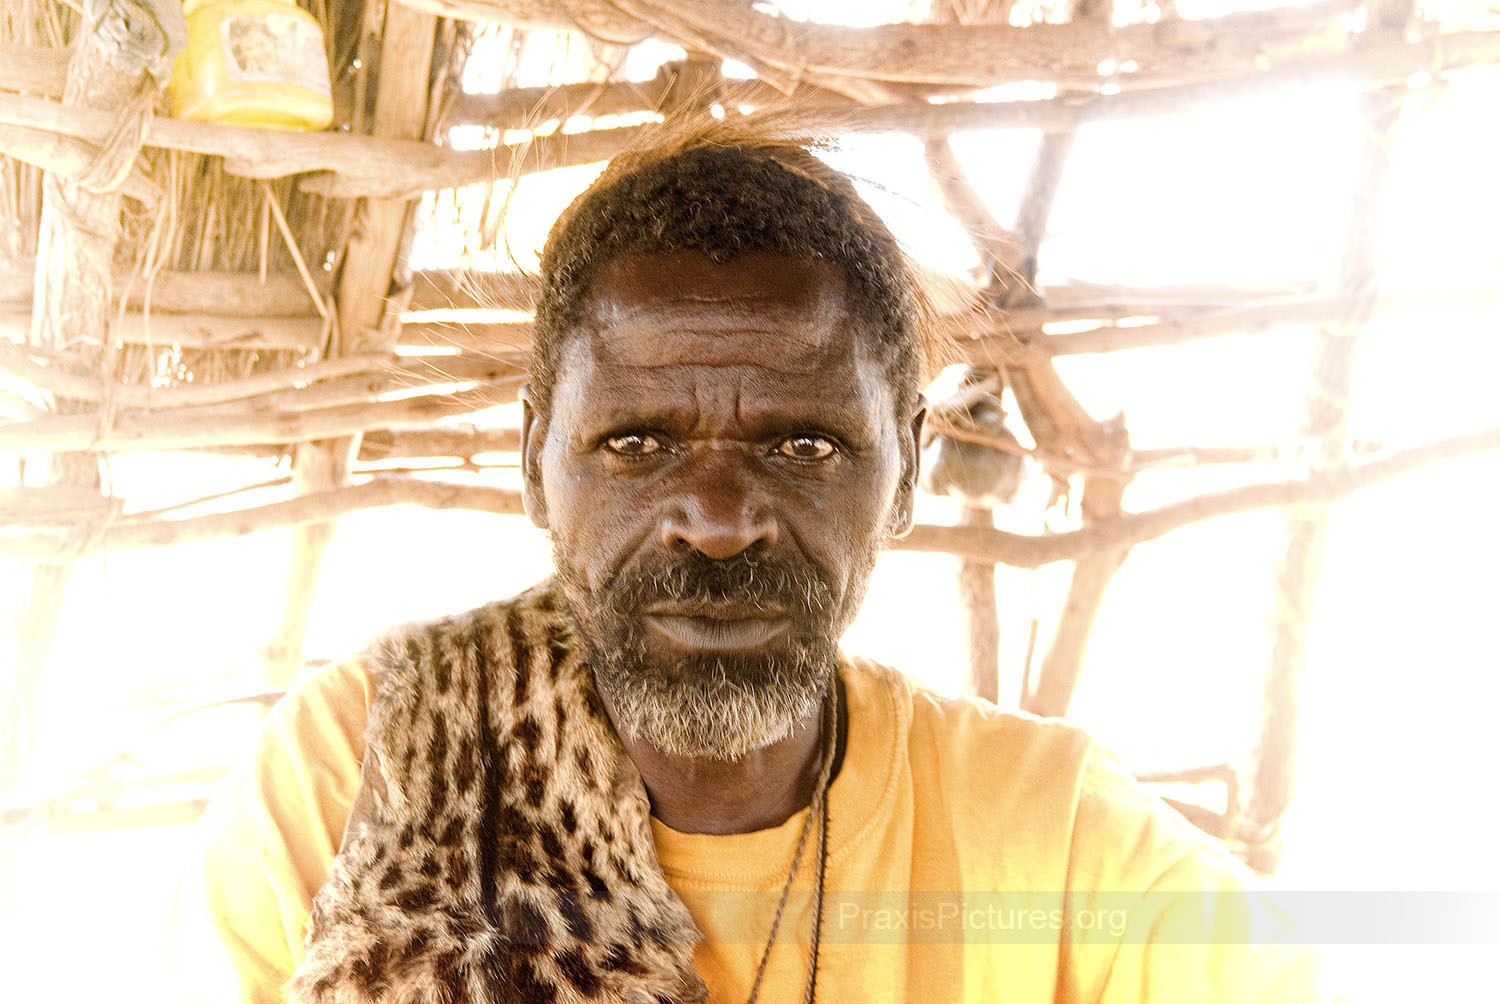 DEOGRATIOS - Deogratios is the traditional witchdoctor, or medicine man, of the indigenous community. He was among the thousands of people who were evicted to make way for the Bulynhulu Gold Mine in Tanzania. He remembers being forced from his home by heavily armed paramilitary forces only one day after the Minister of Minerals and Energy had issued an order giving the Bulyanhulu residents one month to vacate the area. Deogratios and his family had nowhere to go, so for two months after being forced from their home they were living in the bush. During this time his wife became ill. But with their home destroyed, and without access to his medicines, the healer could do nothing as he sat and watched his wife die.